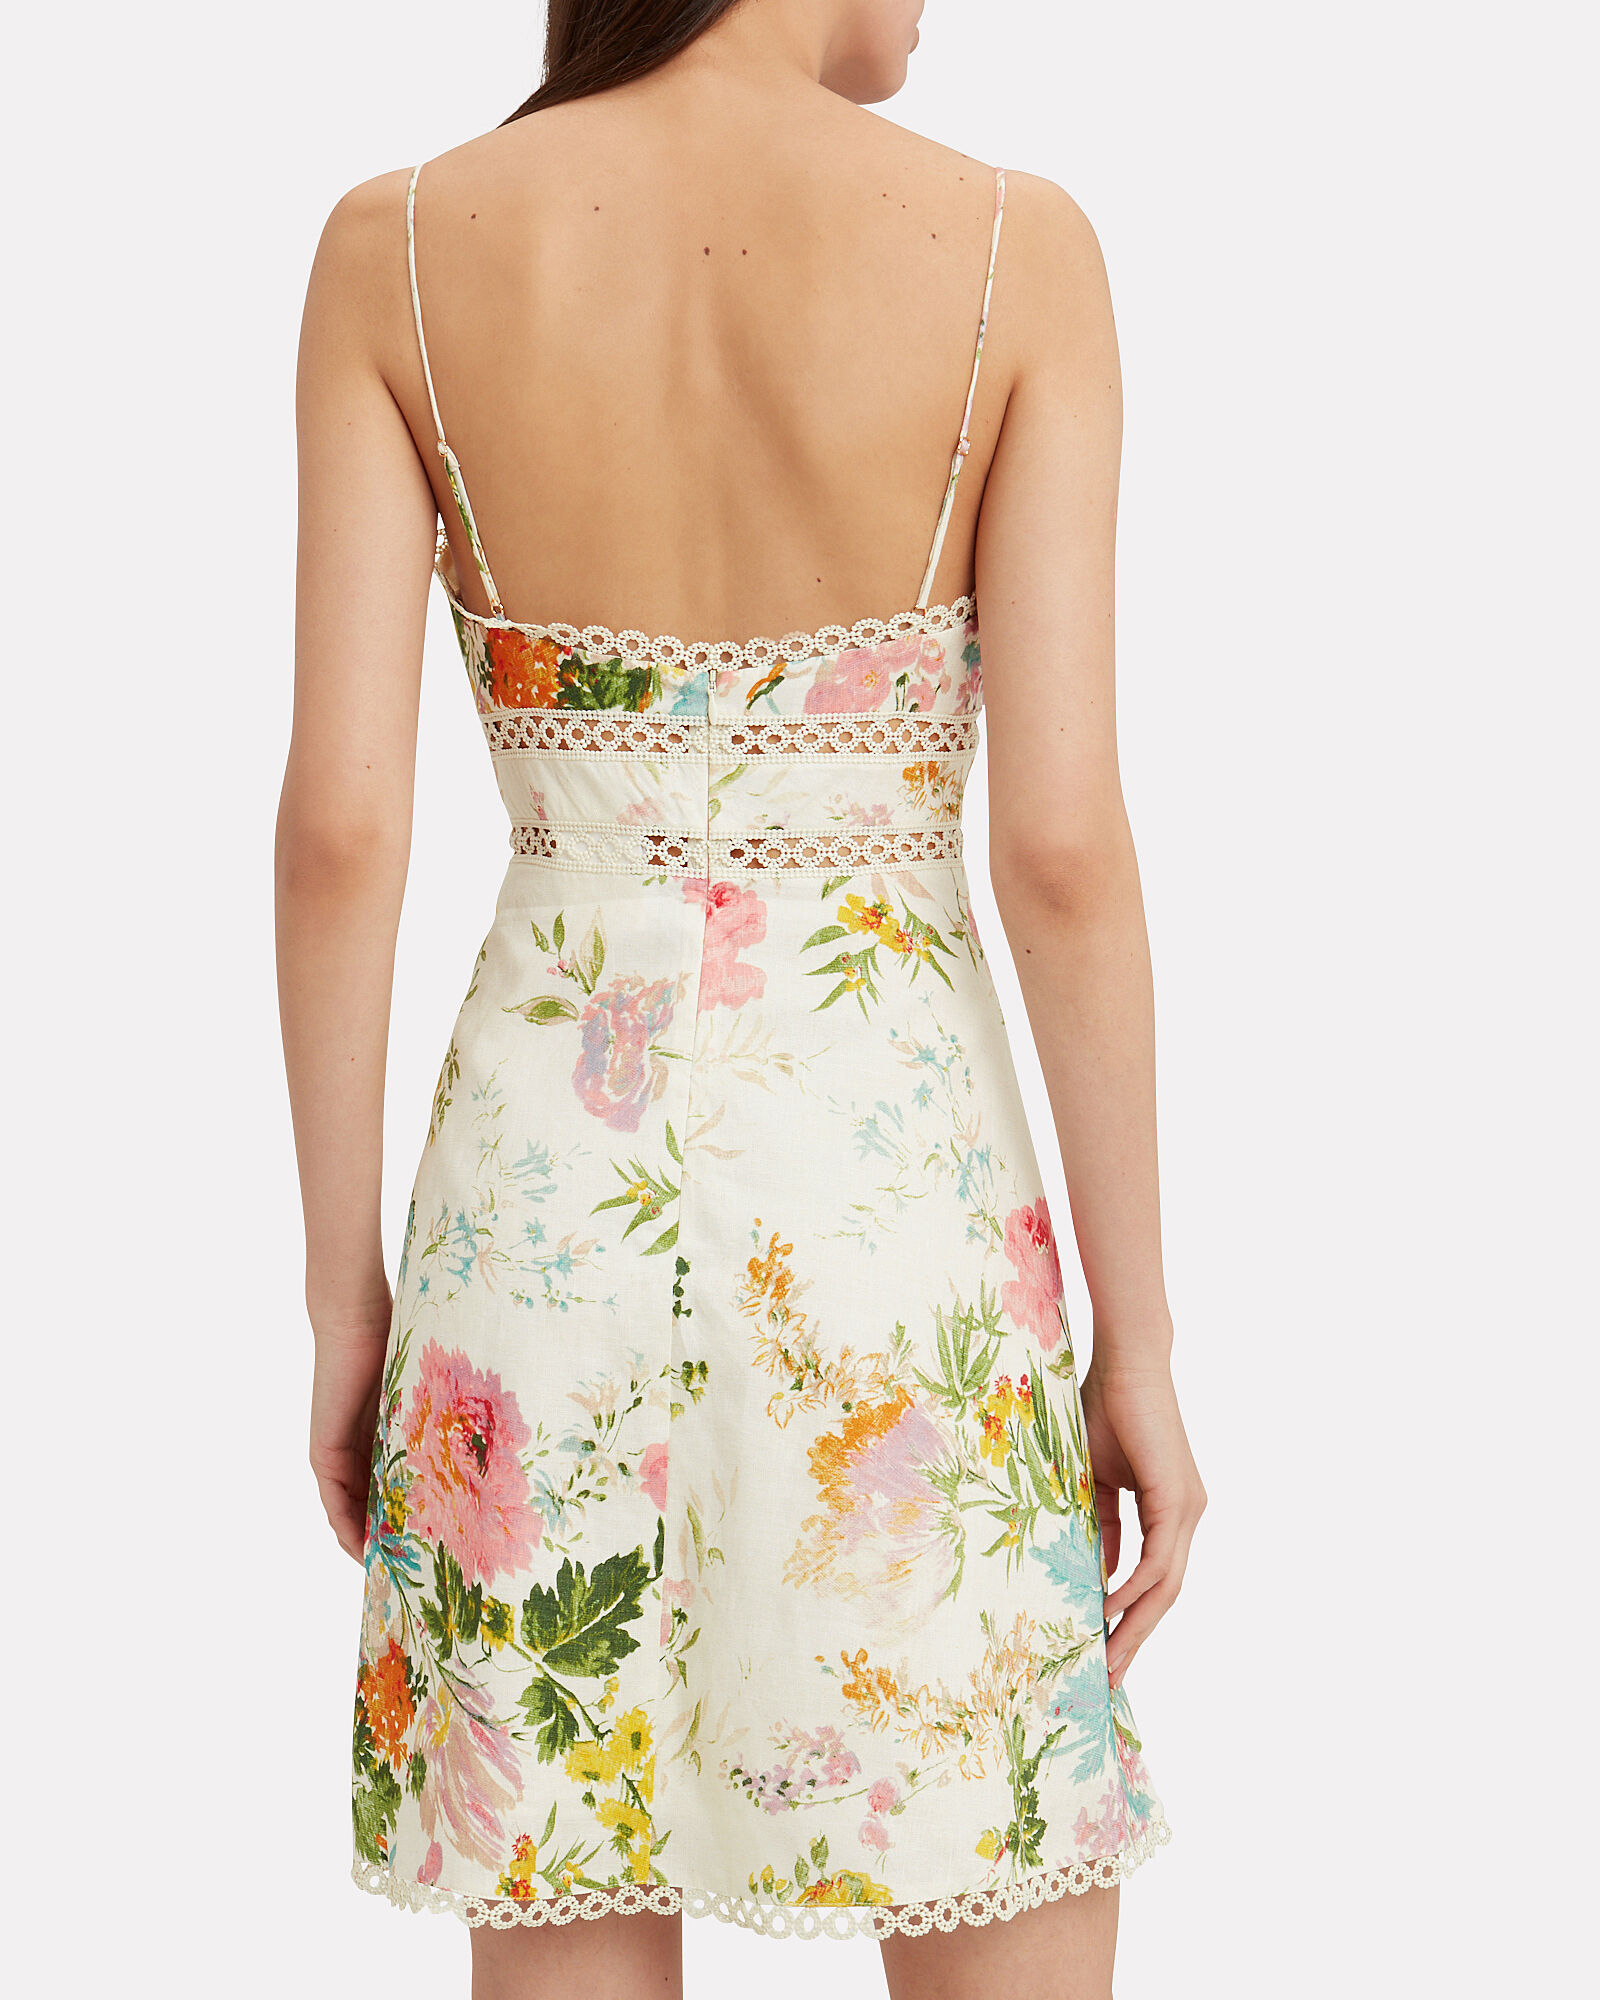 Heathers Garden Floral Dress, MULTI, hi-res